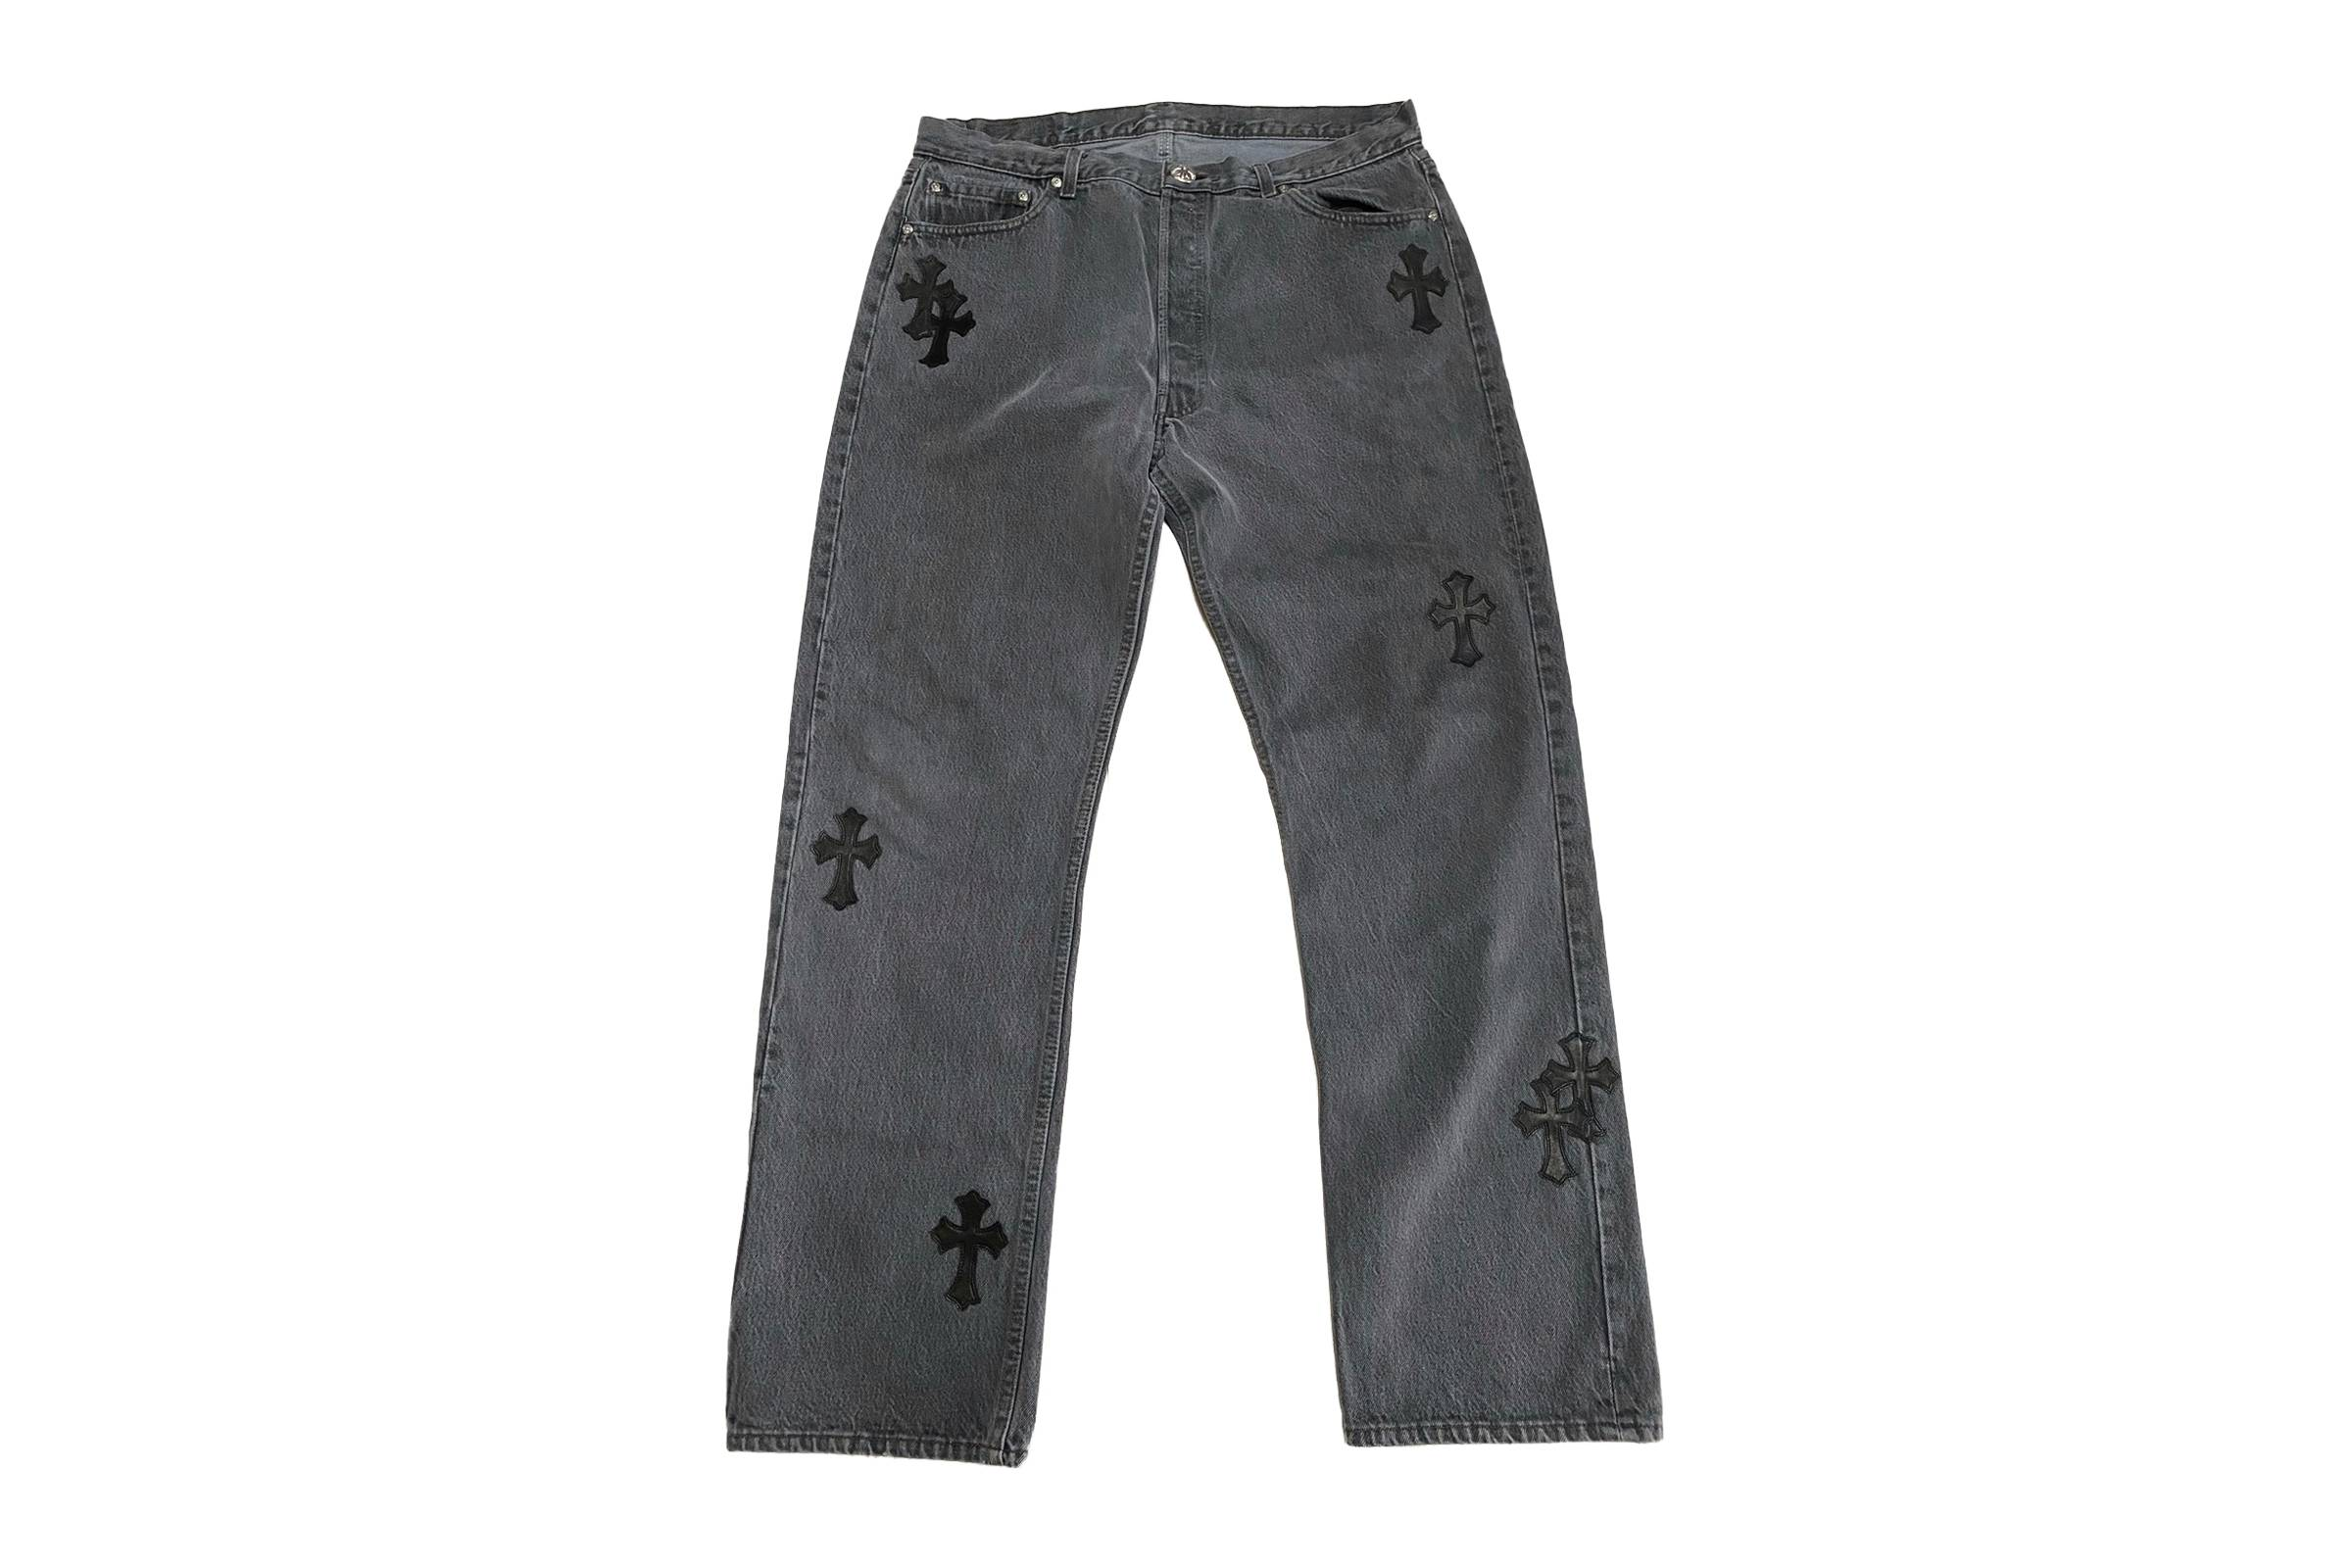 Chome Hearts x Levi's Cross Patchwork Denim